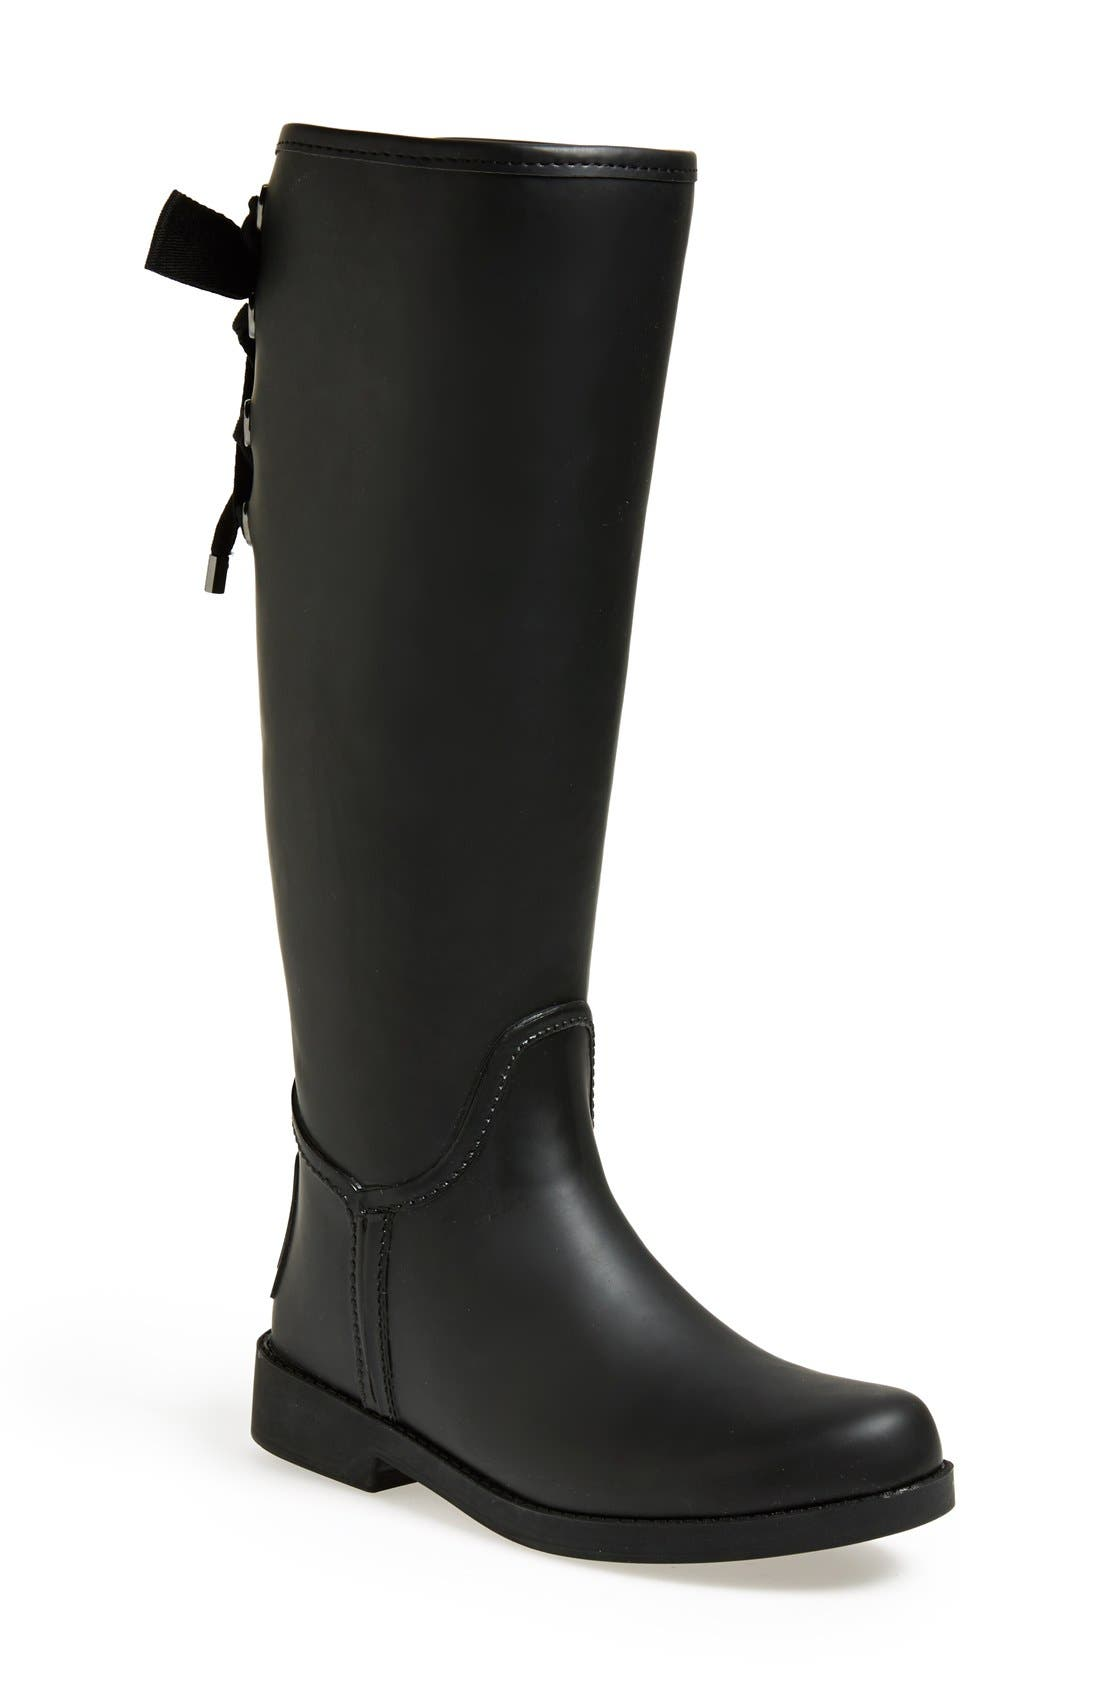 Main Image - COACH 'Tristee' Waterproof Rain Boot